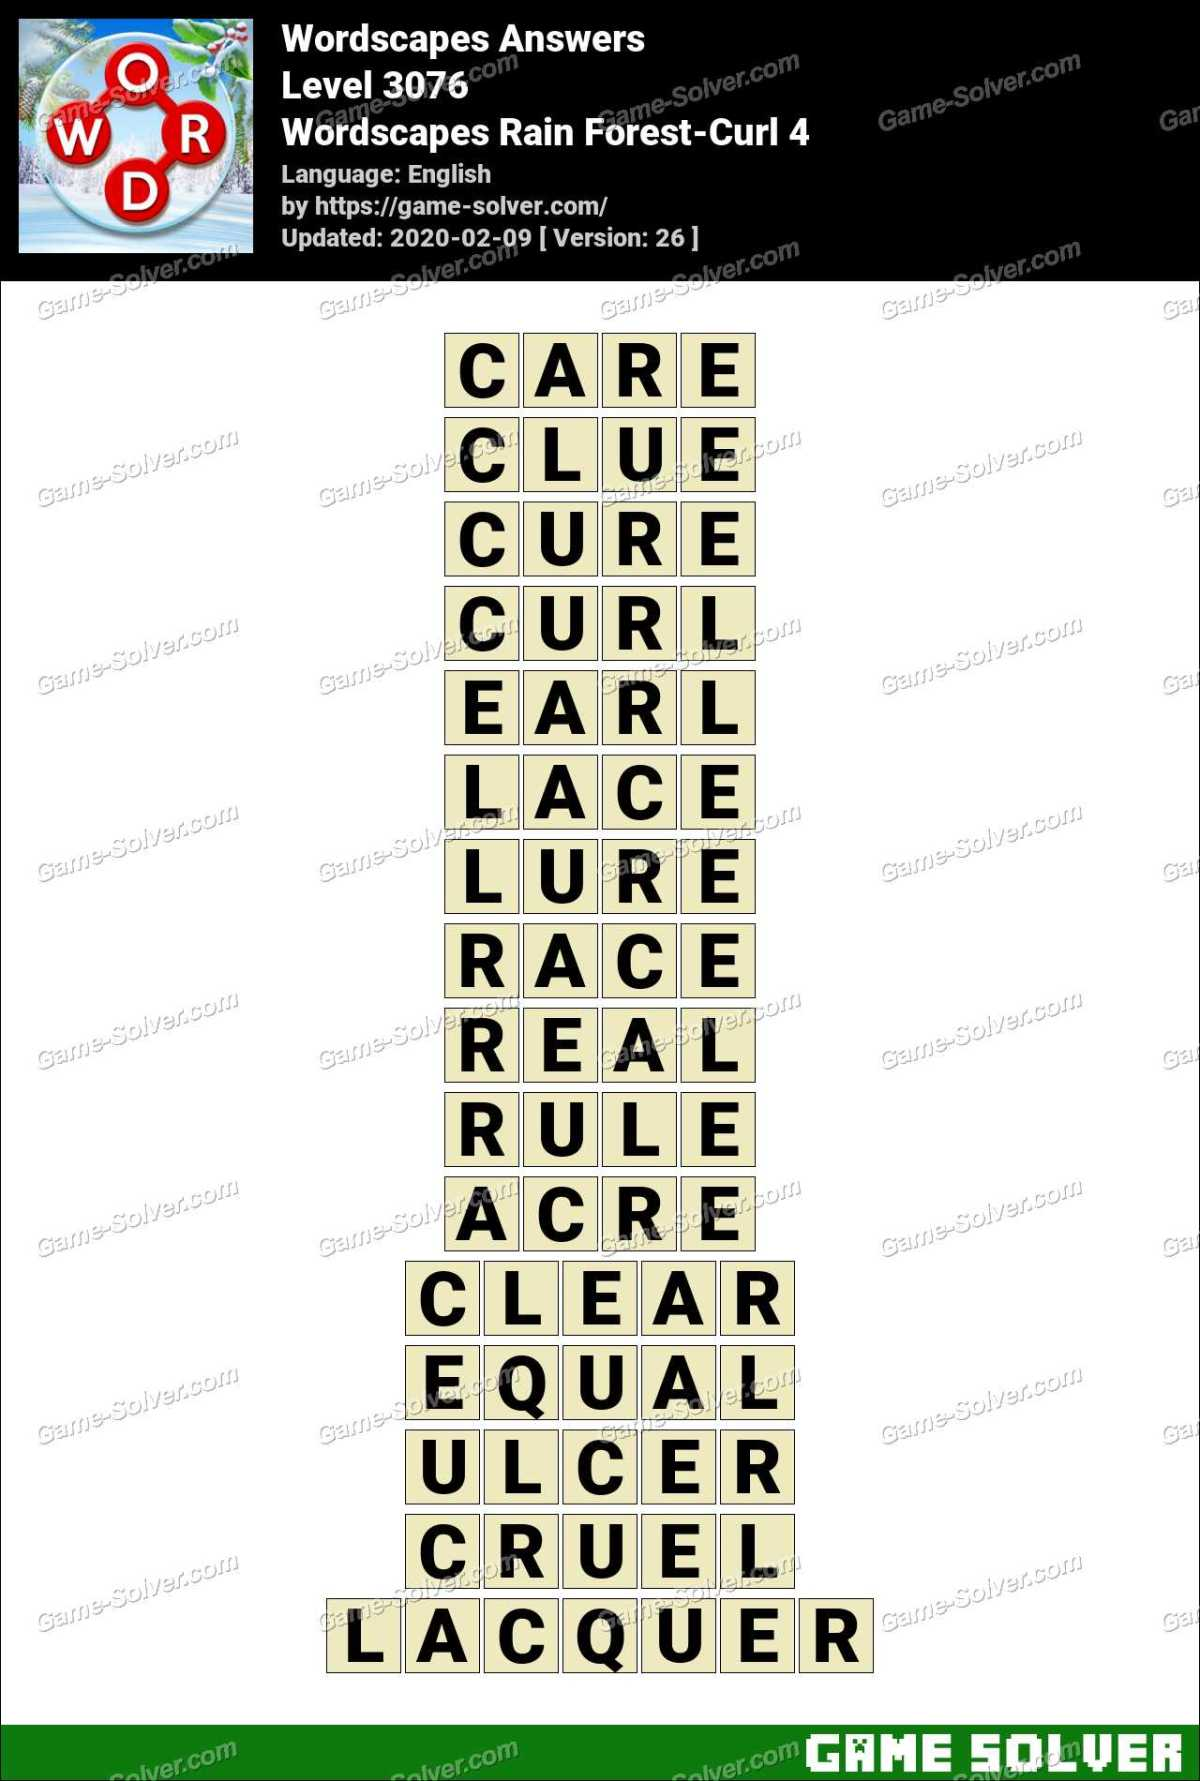 Wordscapes Rain Forest-Curl 4 Answers